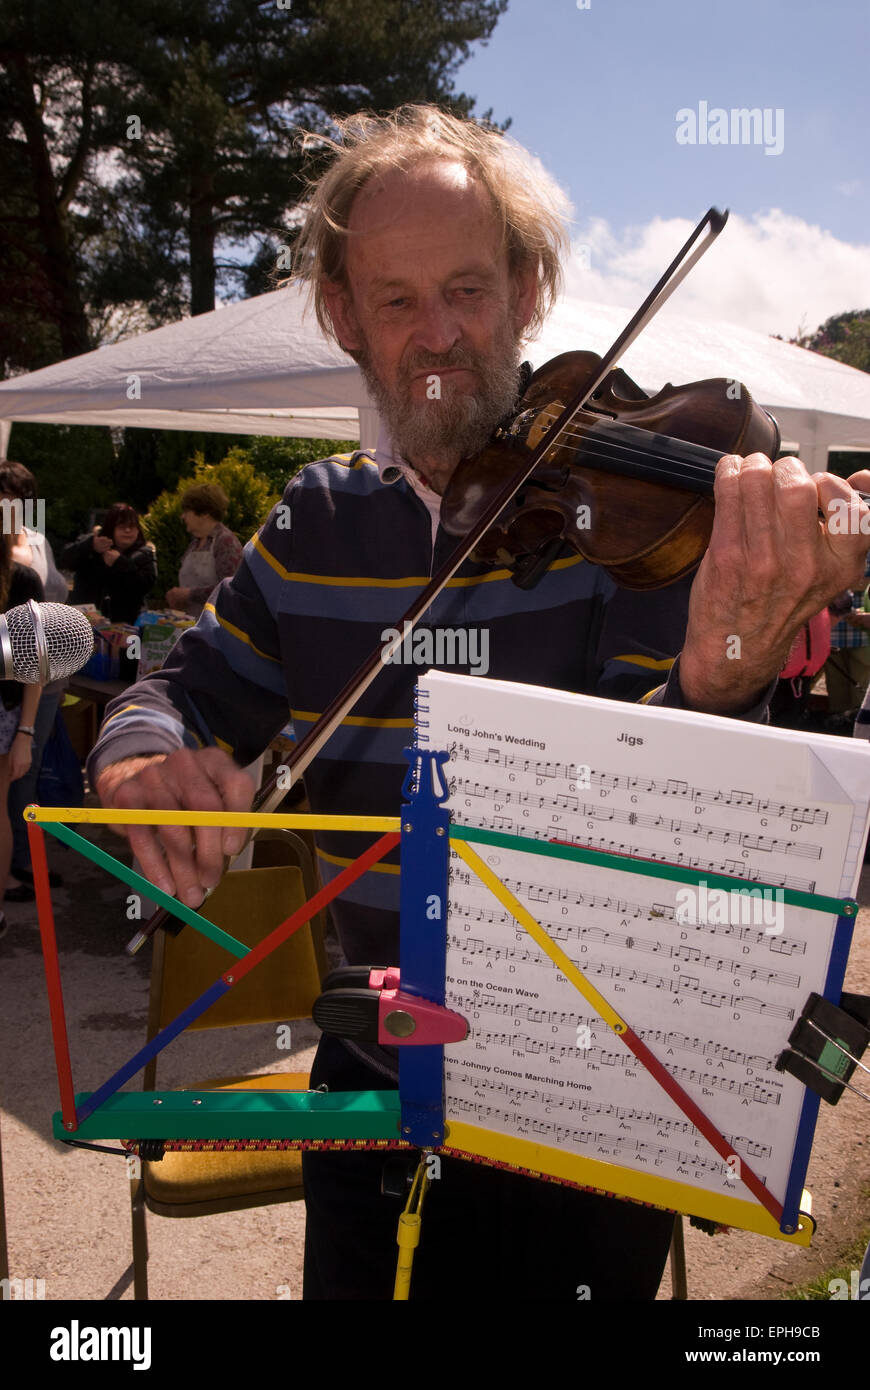 Man entertaining the crowds playing the violin at a May Fayre, Oakhanger, Hampshire, UK. - Stock Image